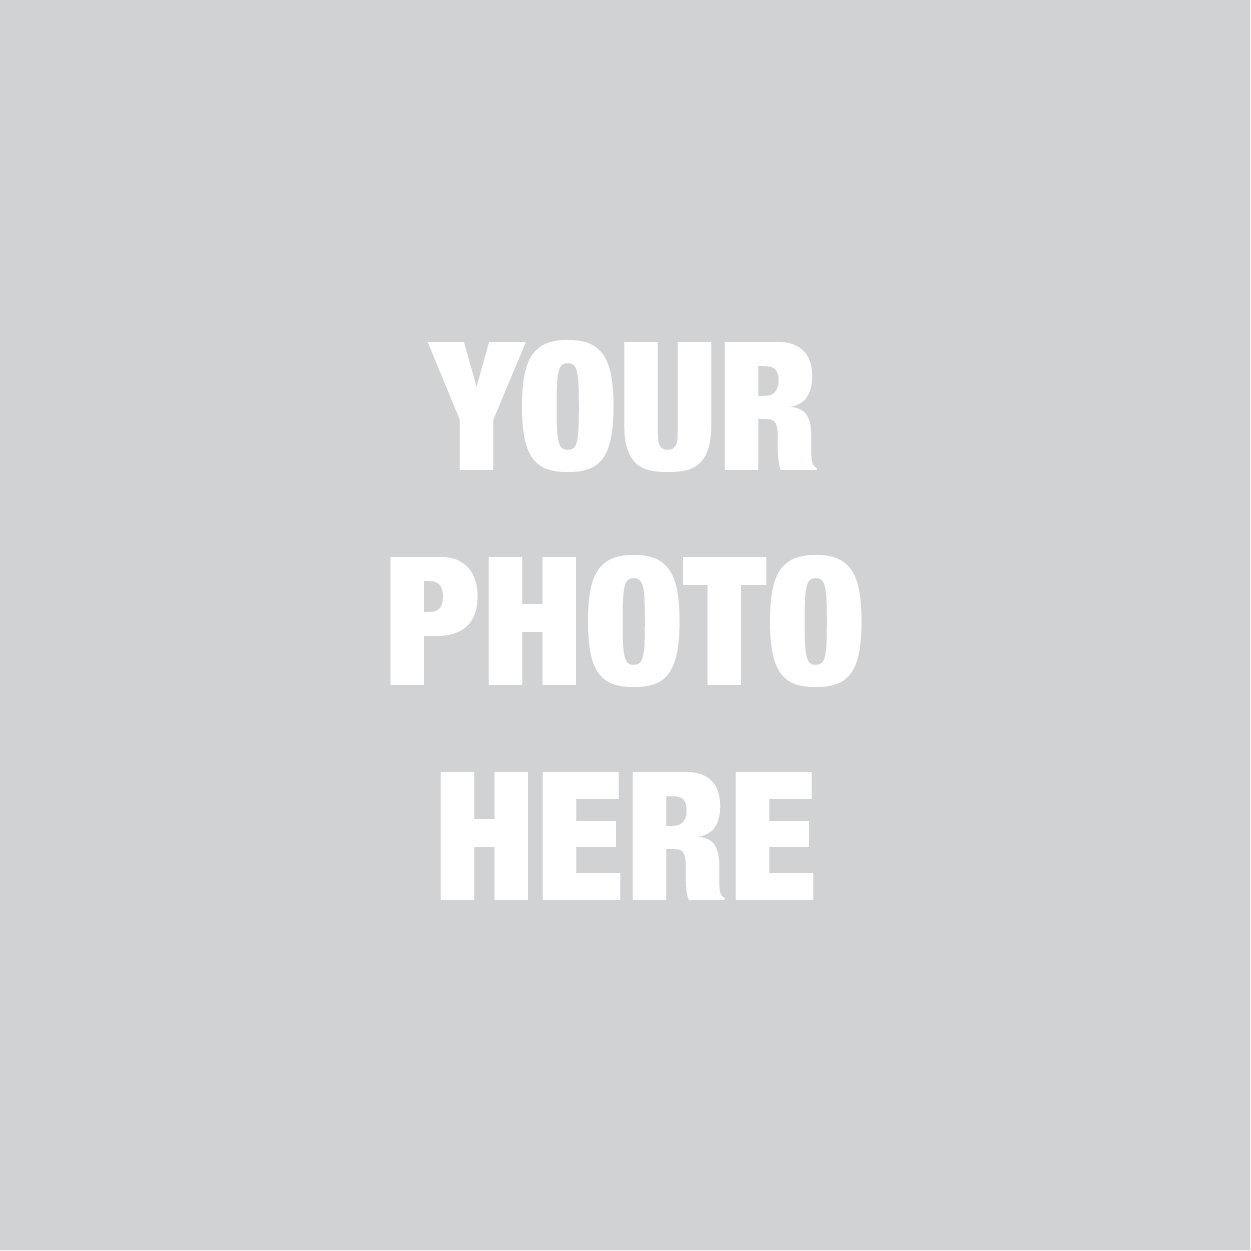 YourPhotoHere.png